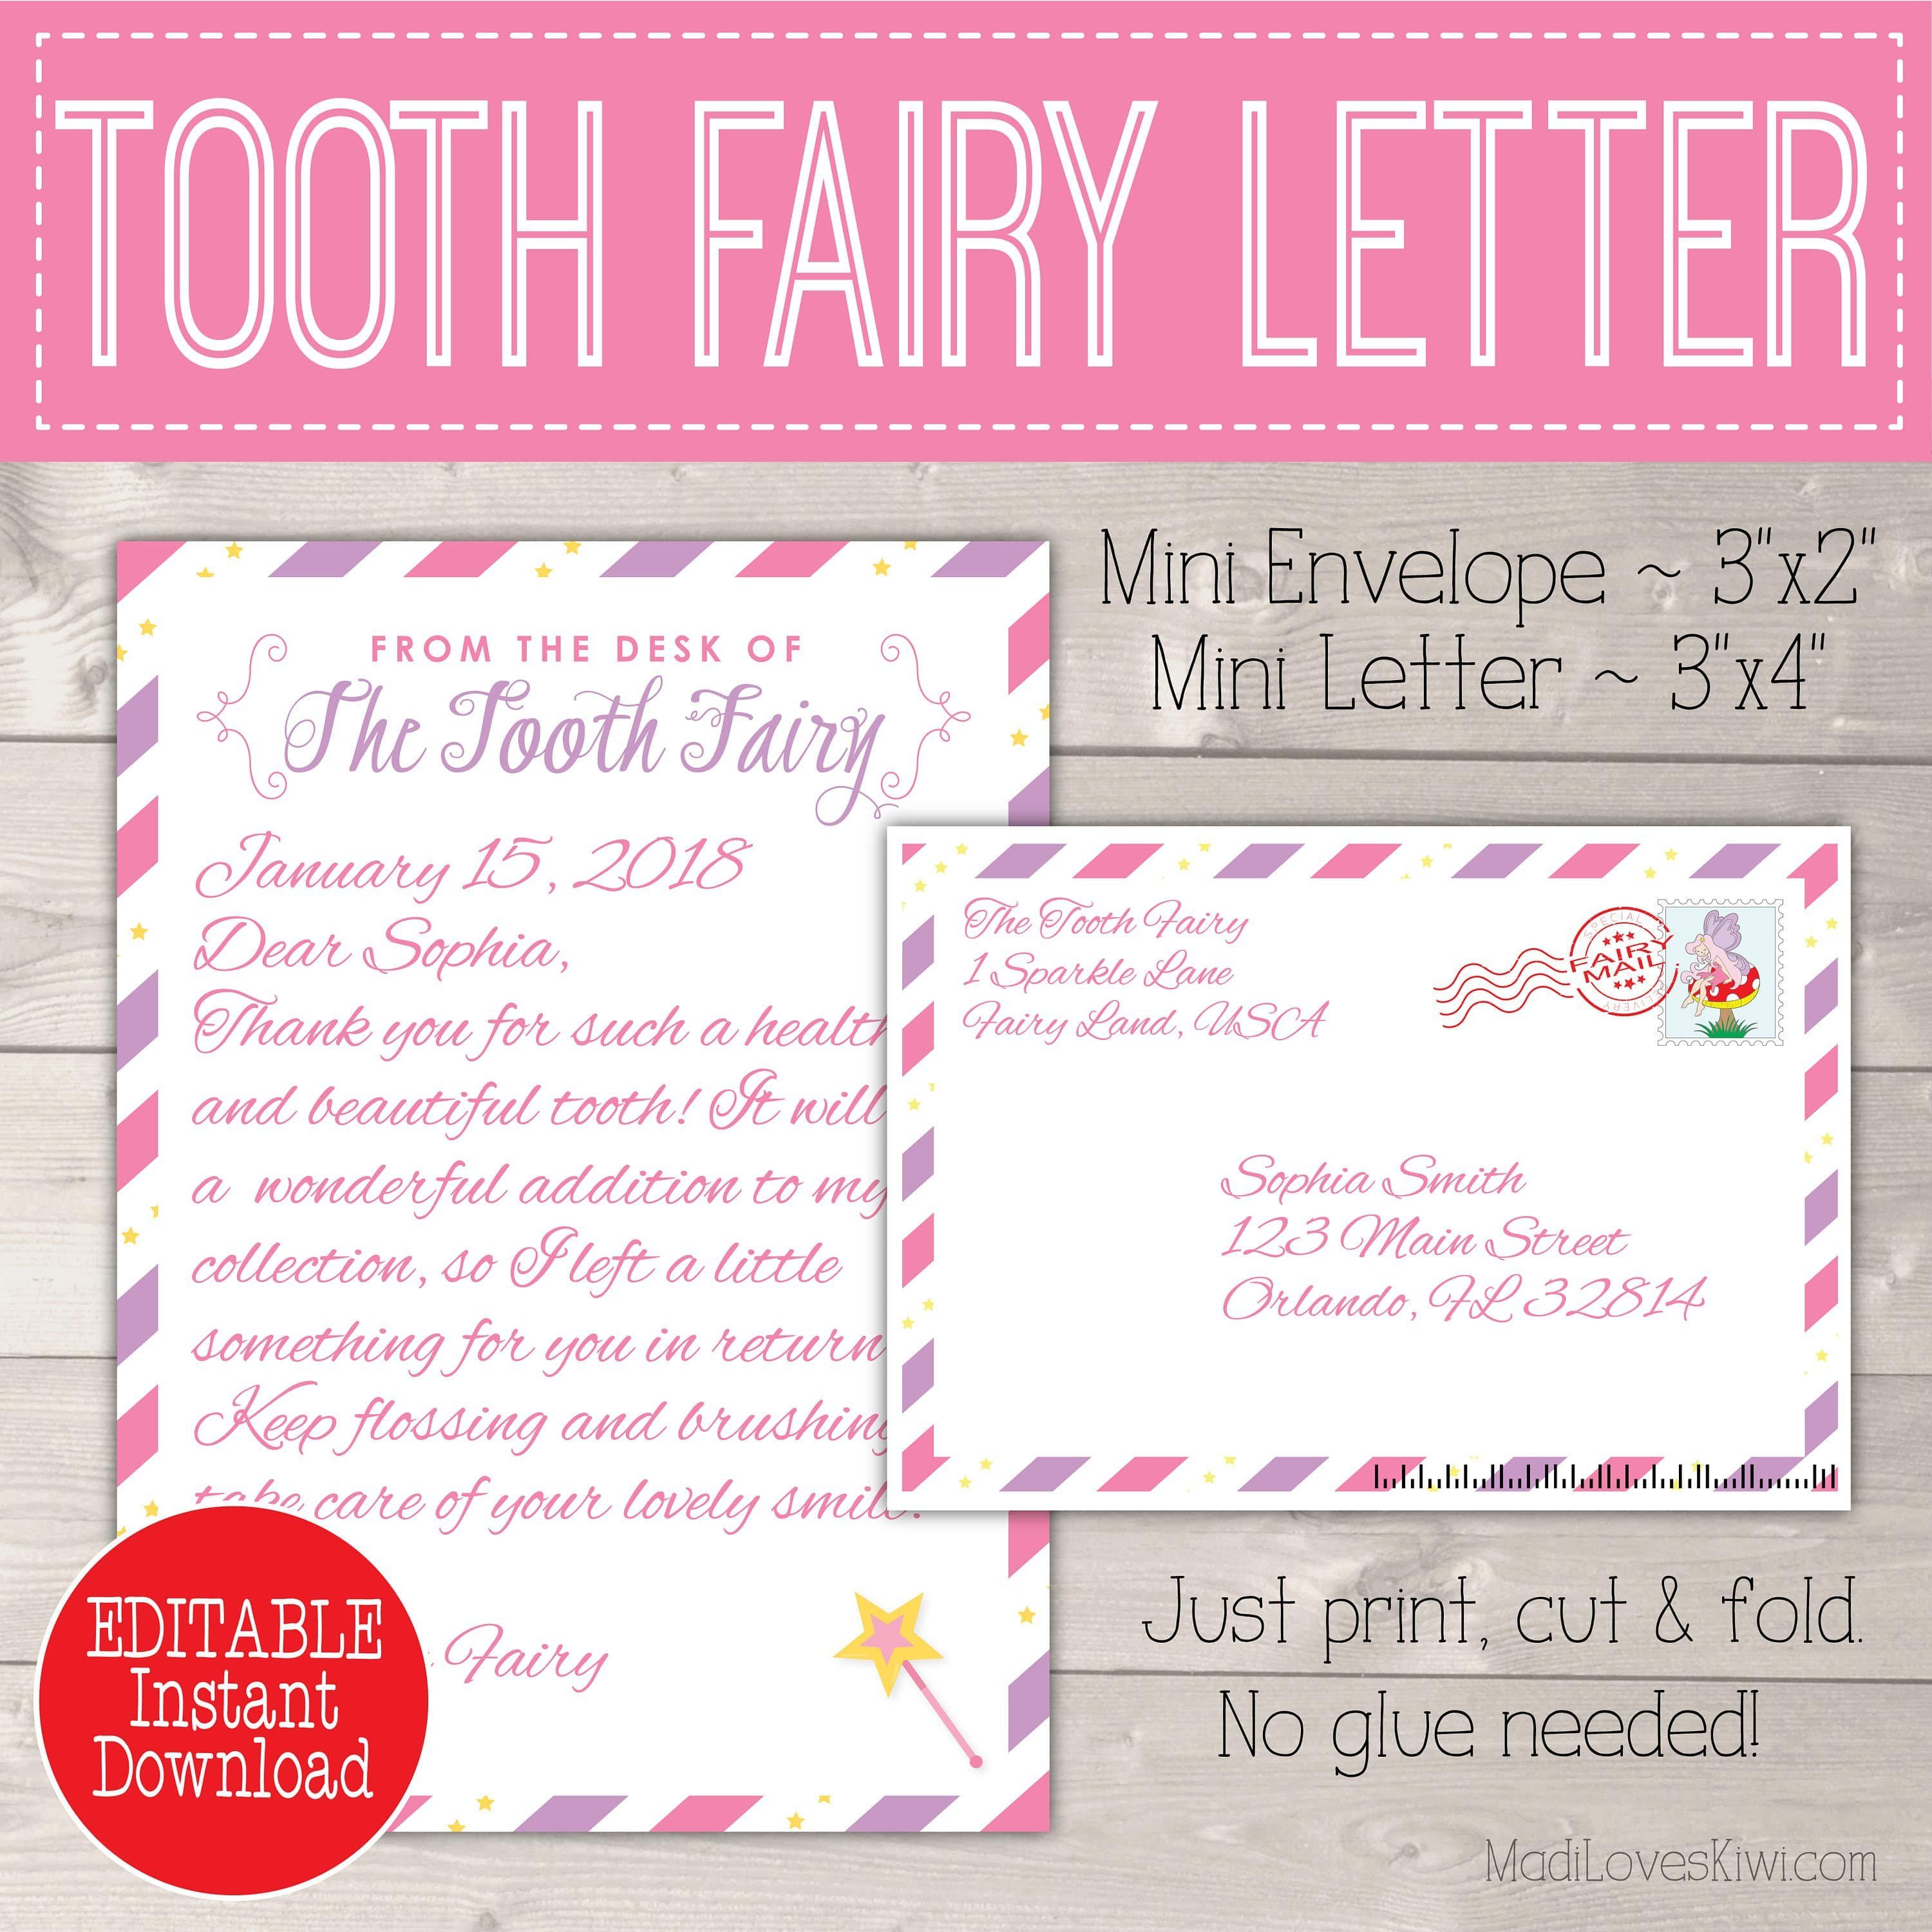 Editable Tooth Fairy Letter With Envelope  Printable Pink  Purple Intended For Tooth Fairy Certificate Template Free